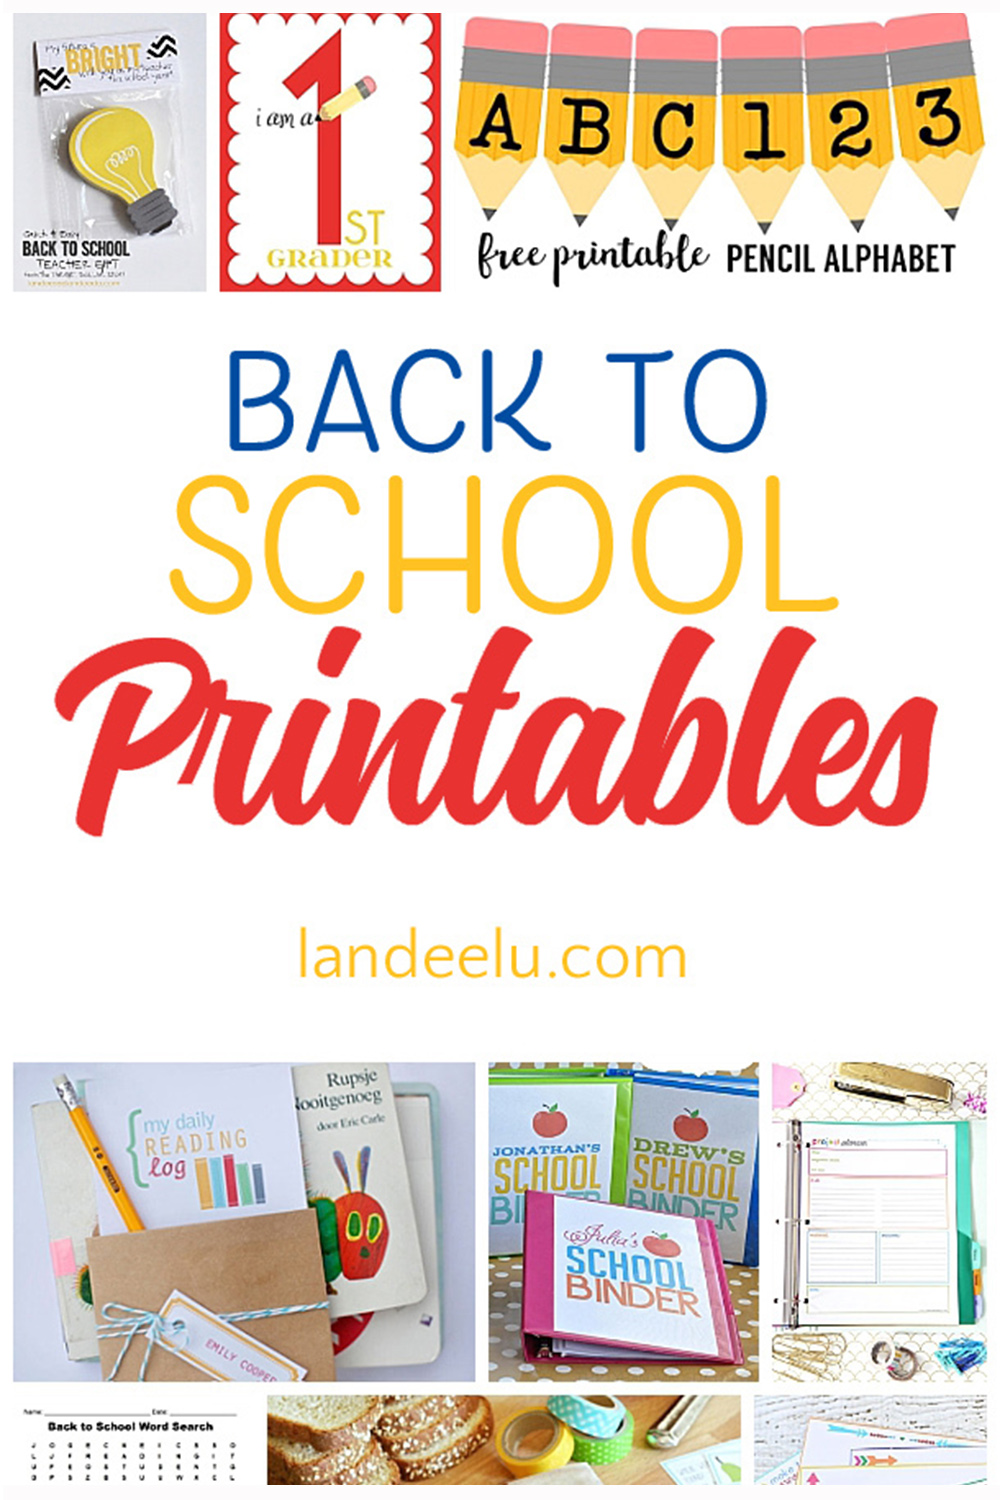 Celebrate, organize, and entertain with these awesome back to school printables! #backtoschool #printables #backtoschoolprints #schoolprintables